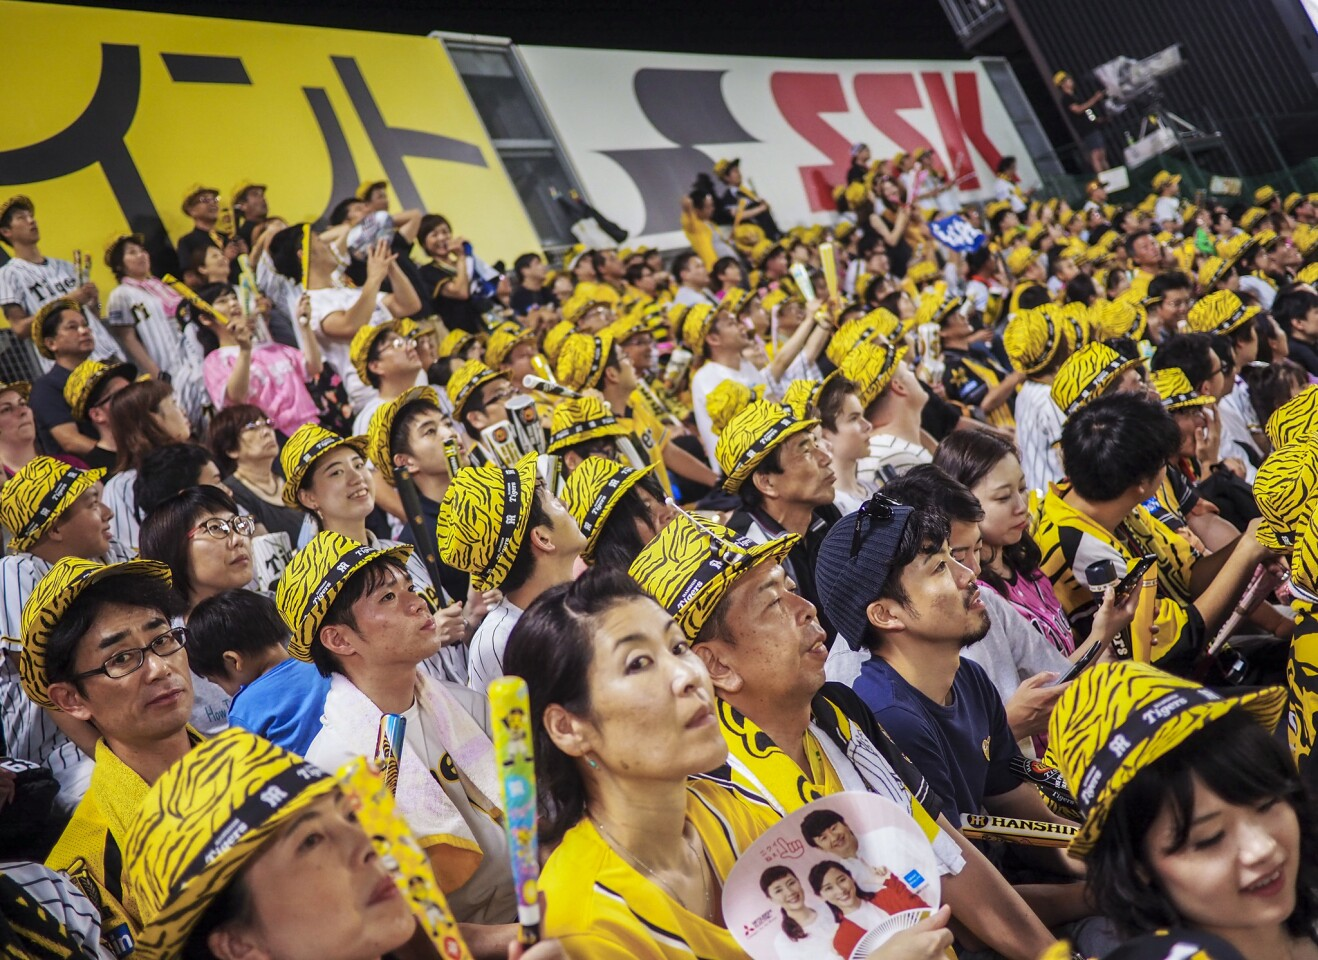 OSAKA, JAPAN - A lively outfield crowd, clad in tiger-striped fedoras, cheers on the Osaka-based Hanshin Tigers. Nippon Professional Baseball games are typically sold out, with lively crowds paying close attention to the action on the field.